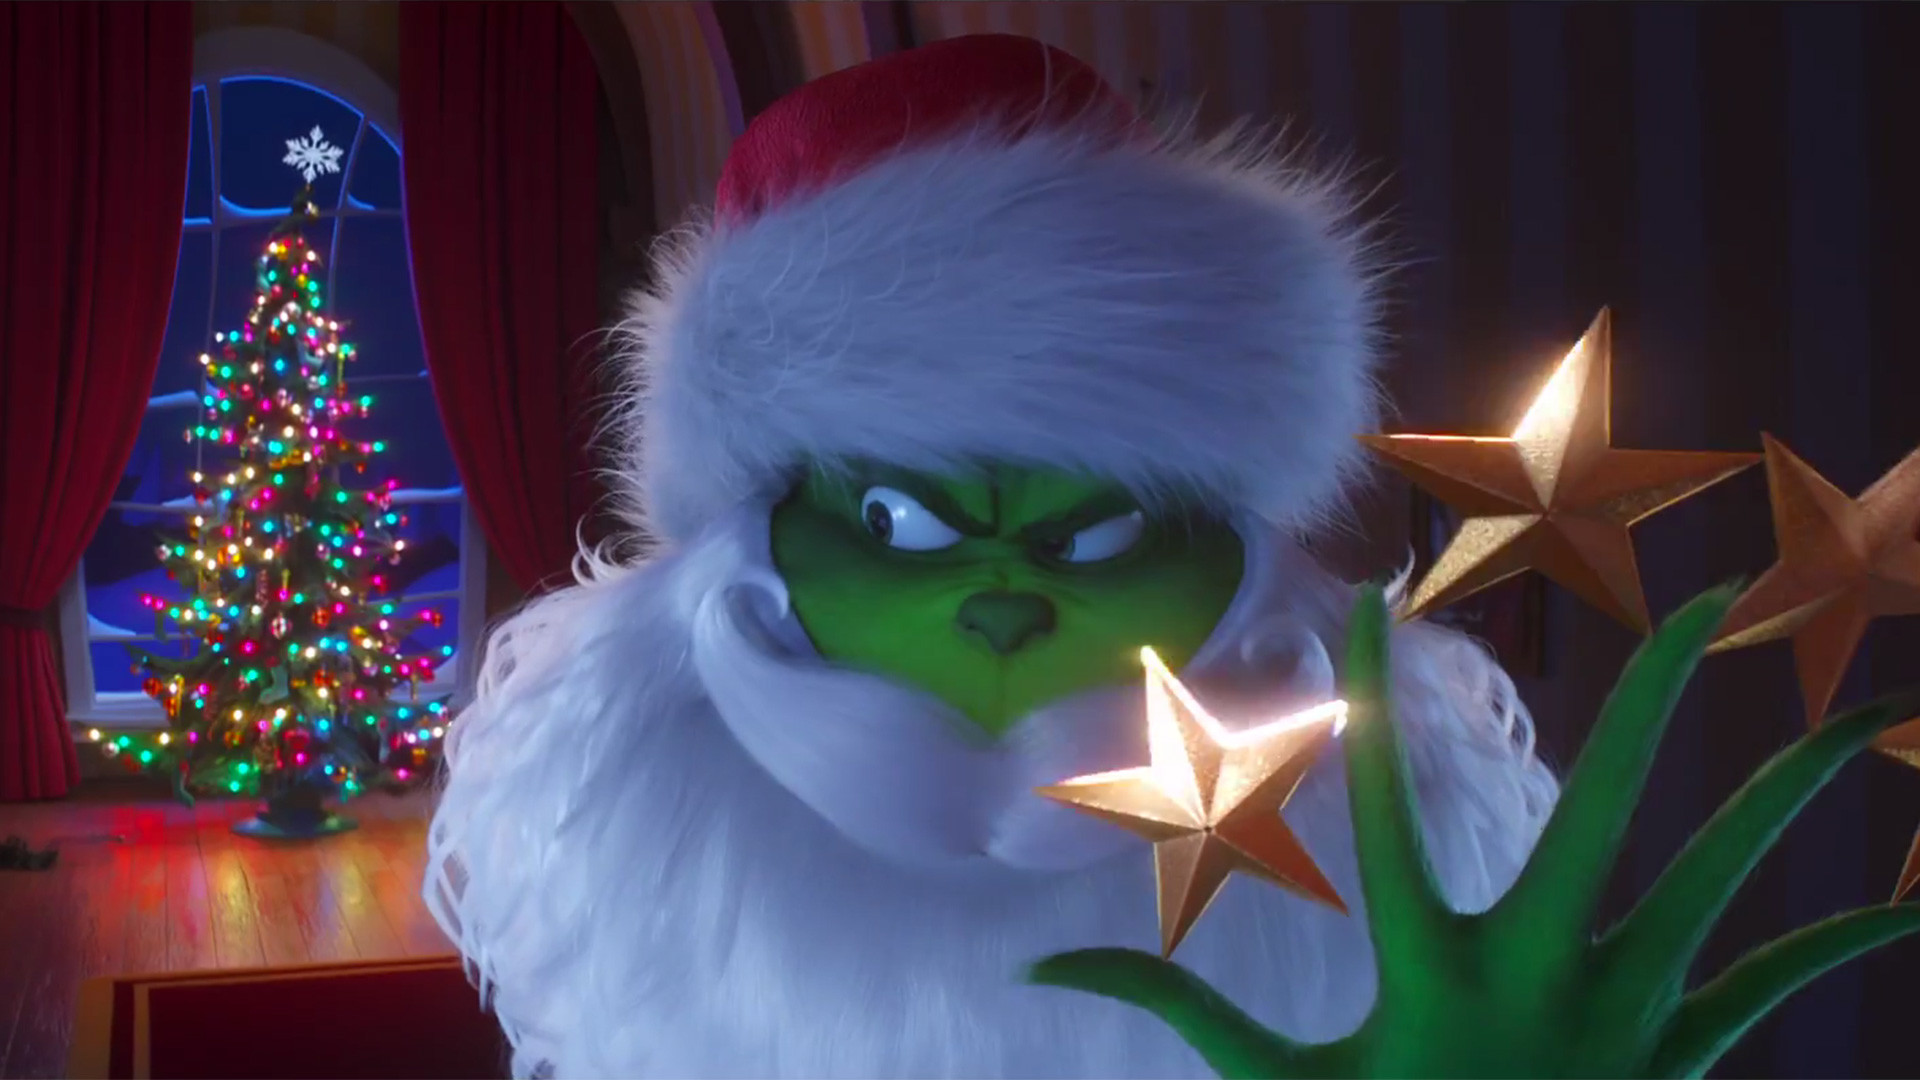 The Grinch Wallpaper 78 Images